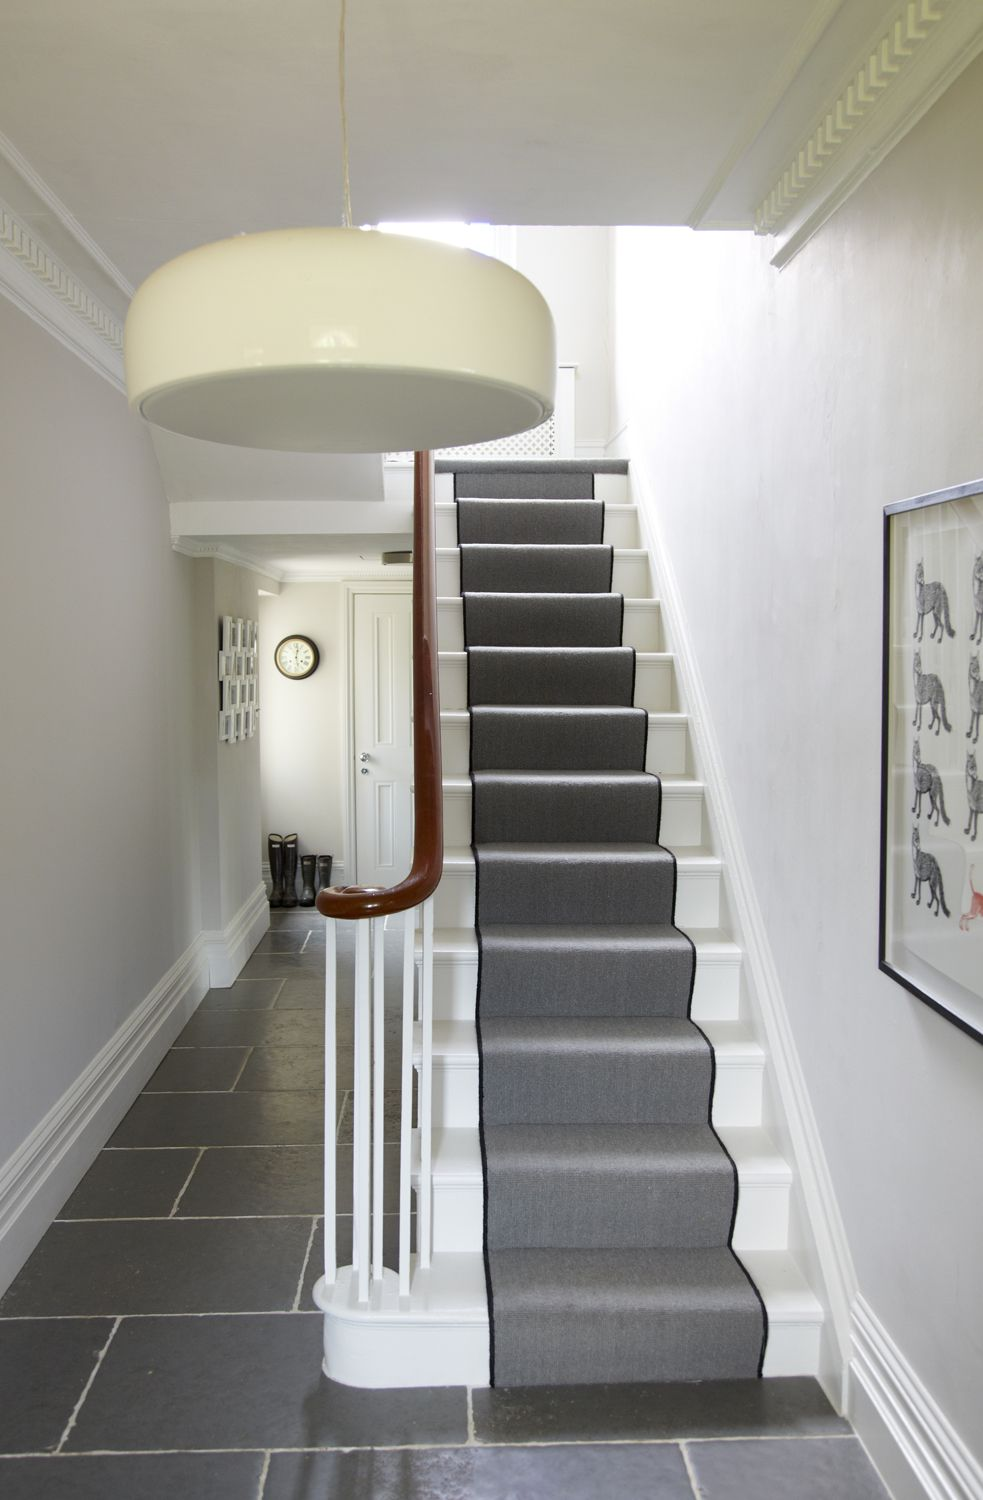 Smithfield S Suspension Dimmable Pendant Lamp In Led Or Halogen   White Stairs With Grey Carpet   Top   Laminate Flooring Carpet   White Staircase   Grey Stripe   Dark Grey